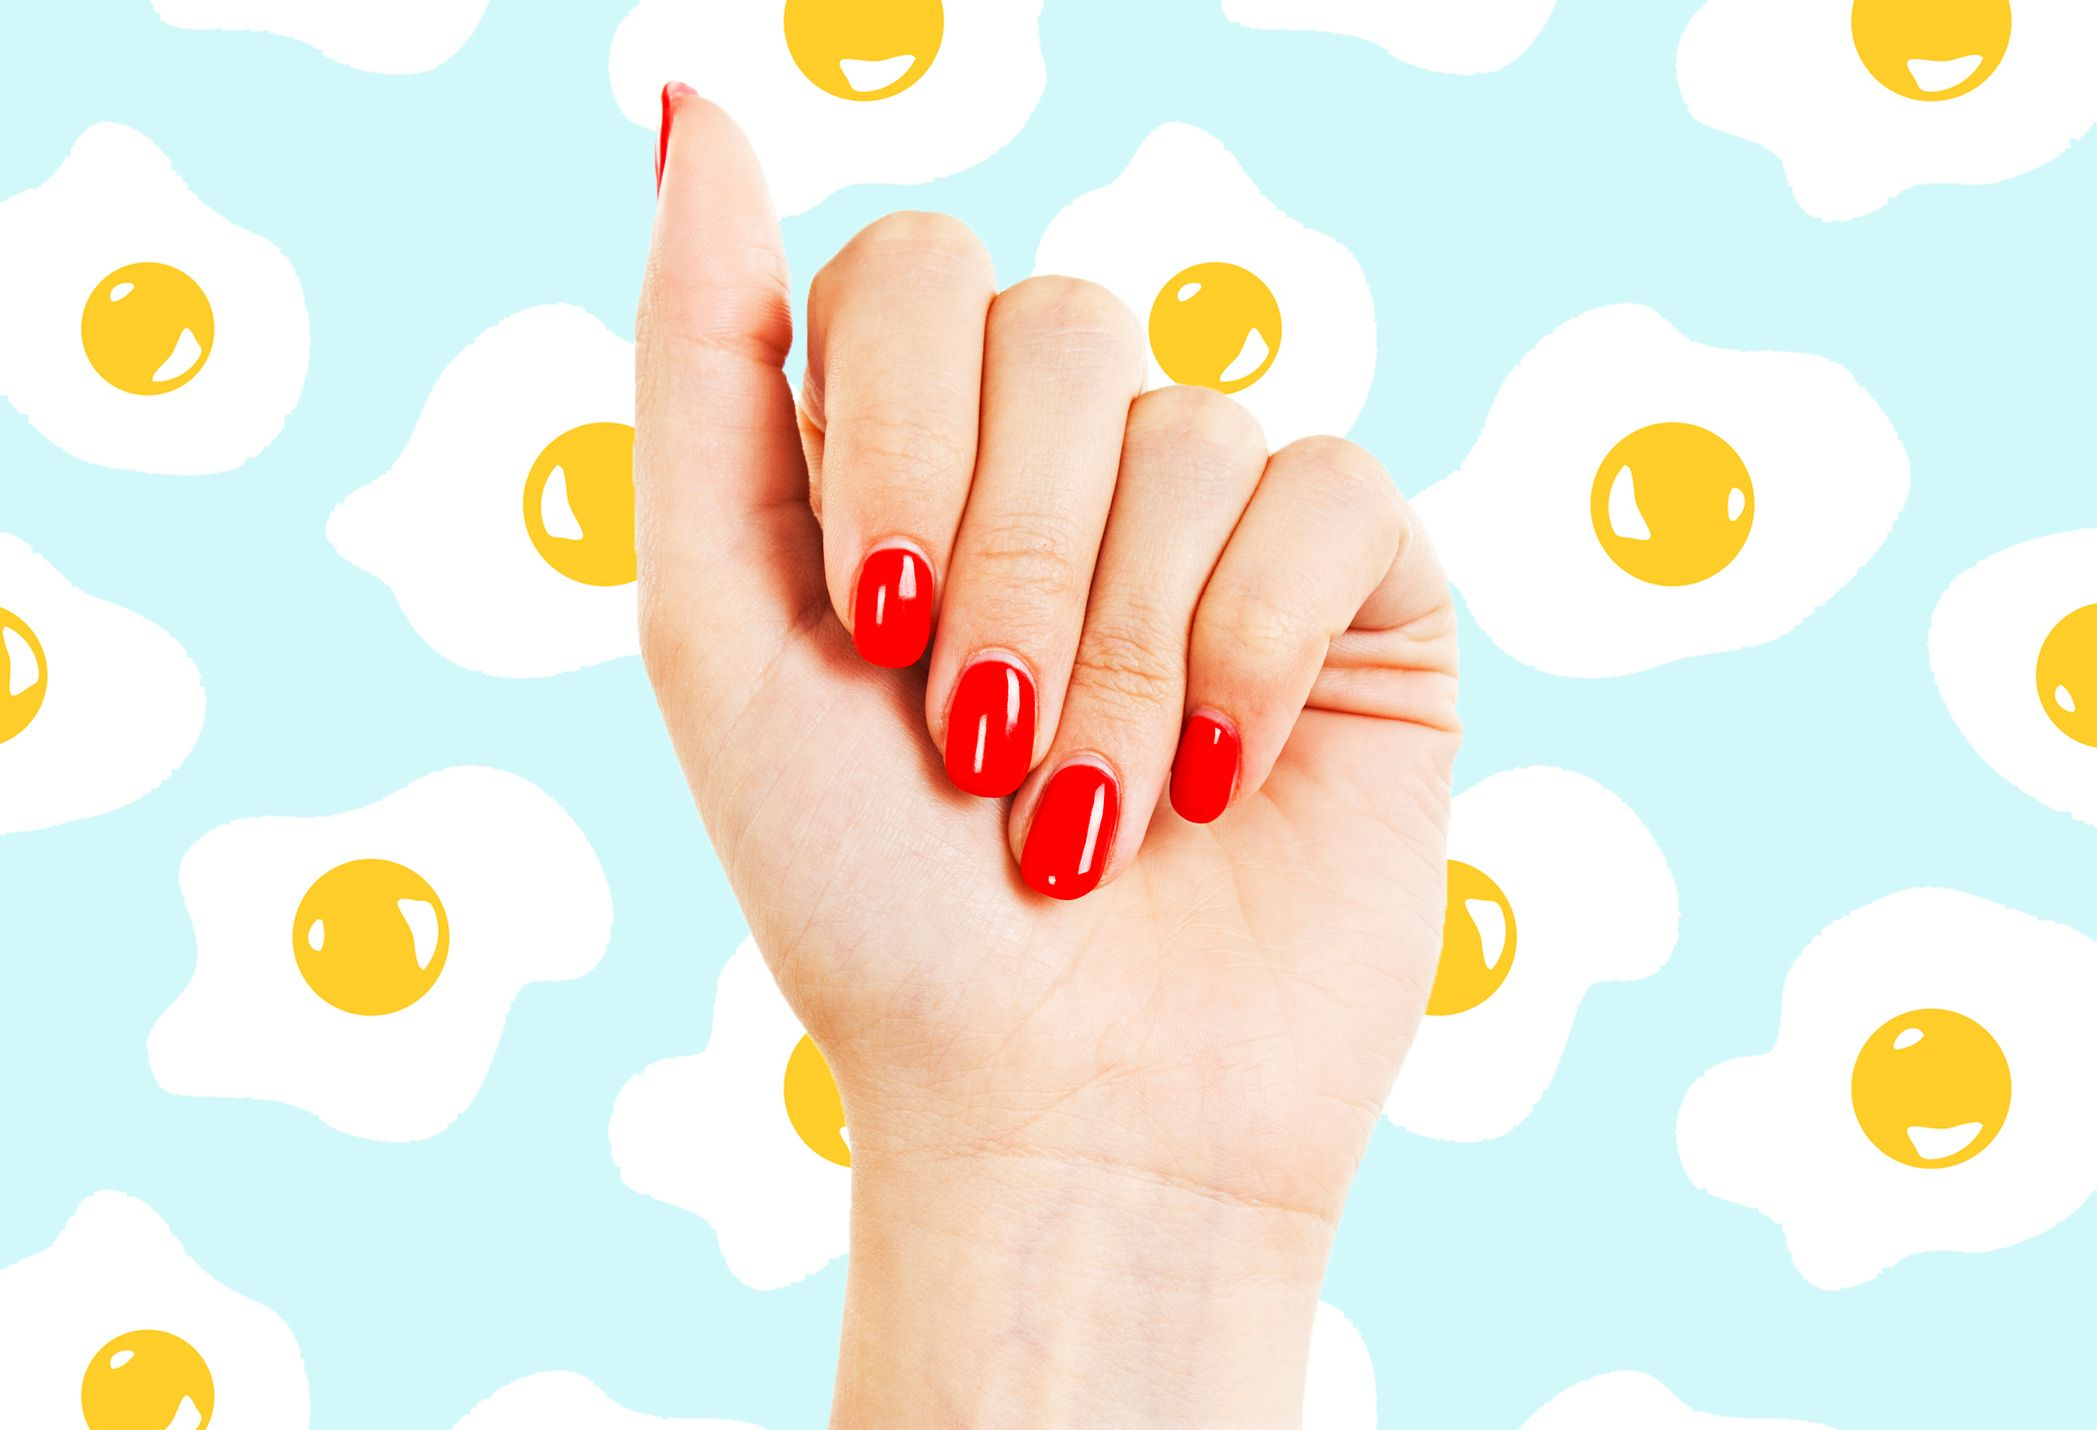 5 Foods to Eat Healthy Nails - Best Vitamins for Nail Growth